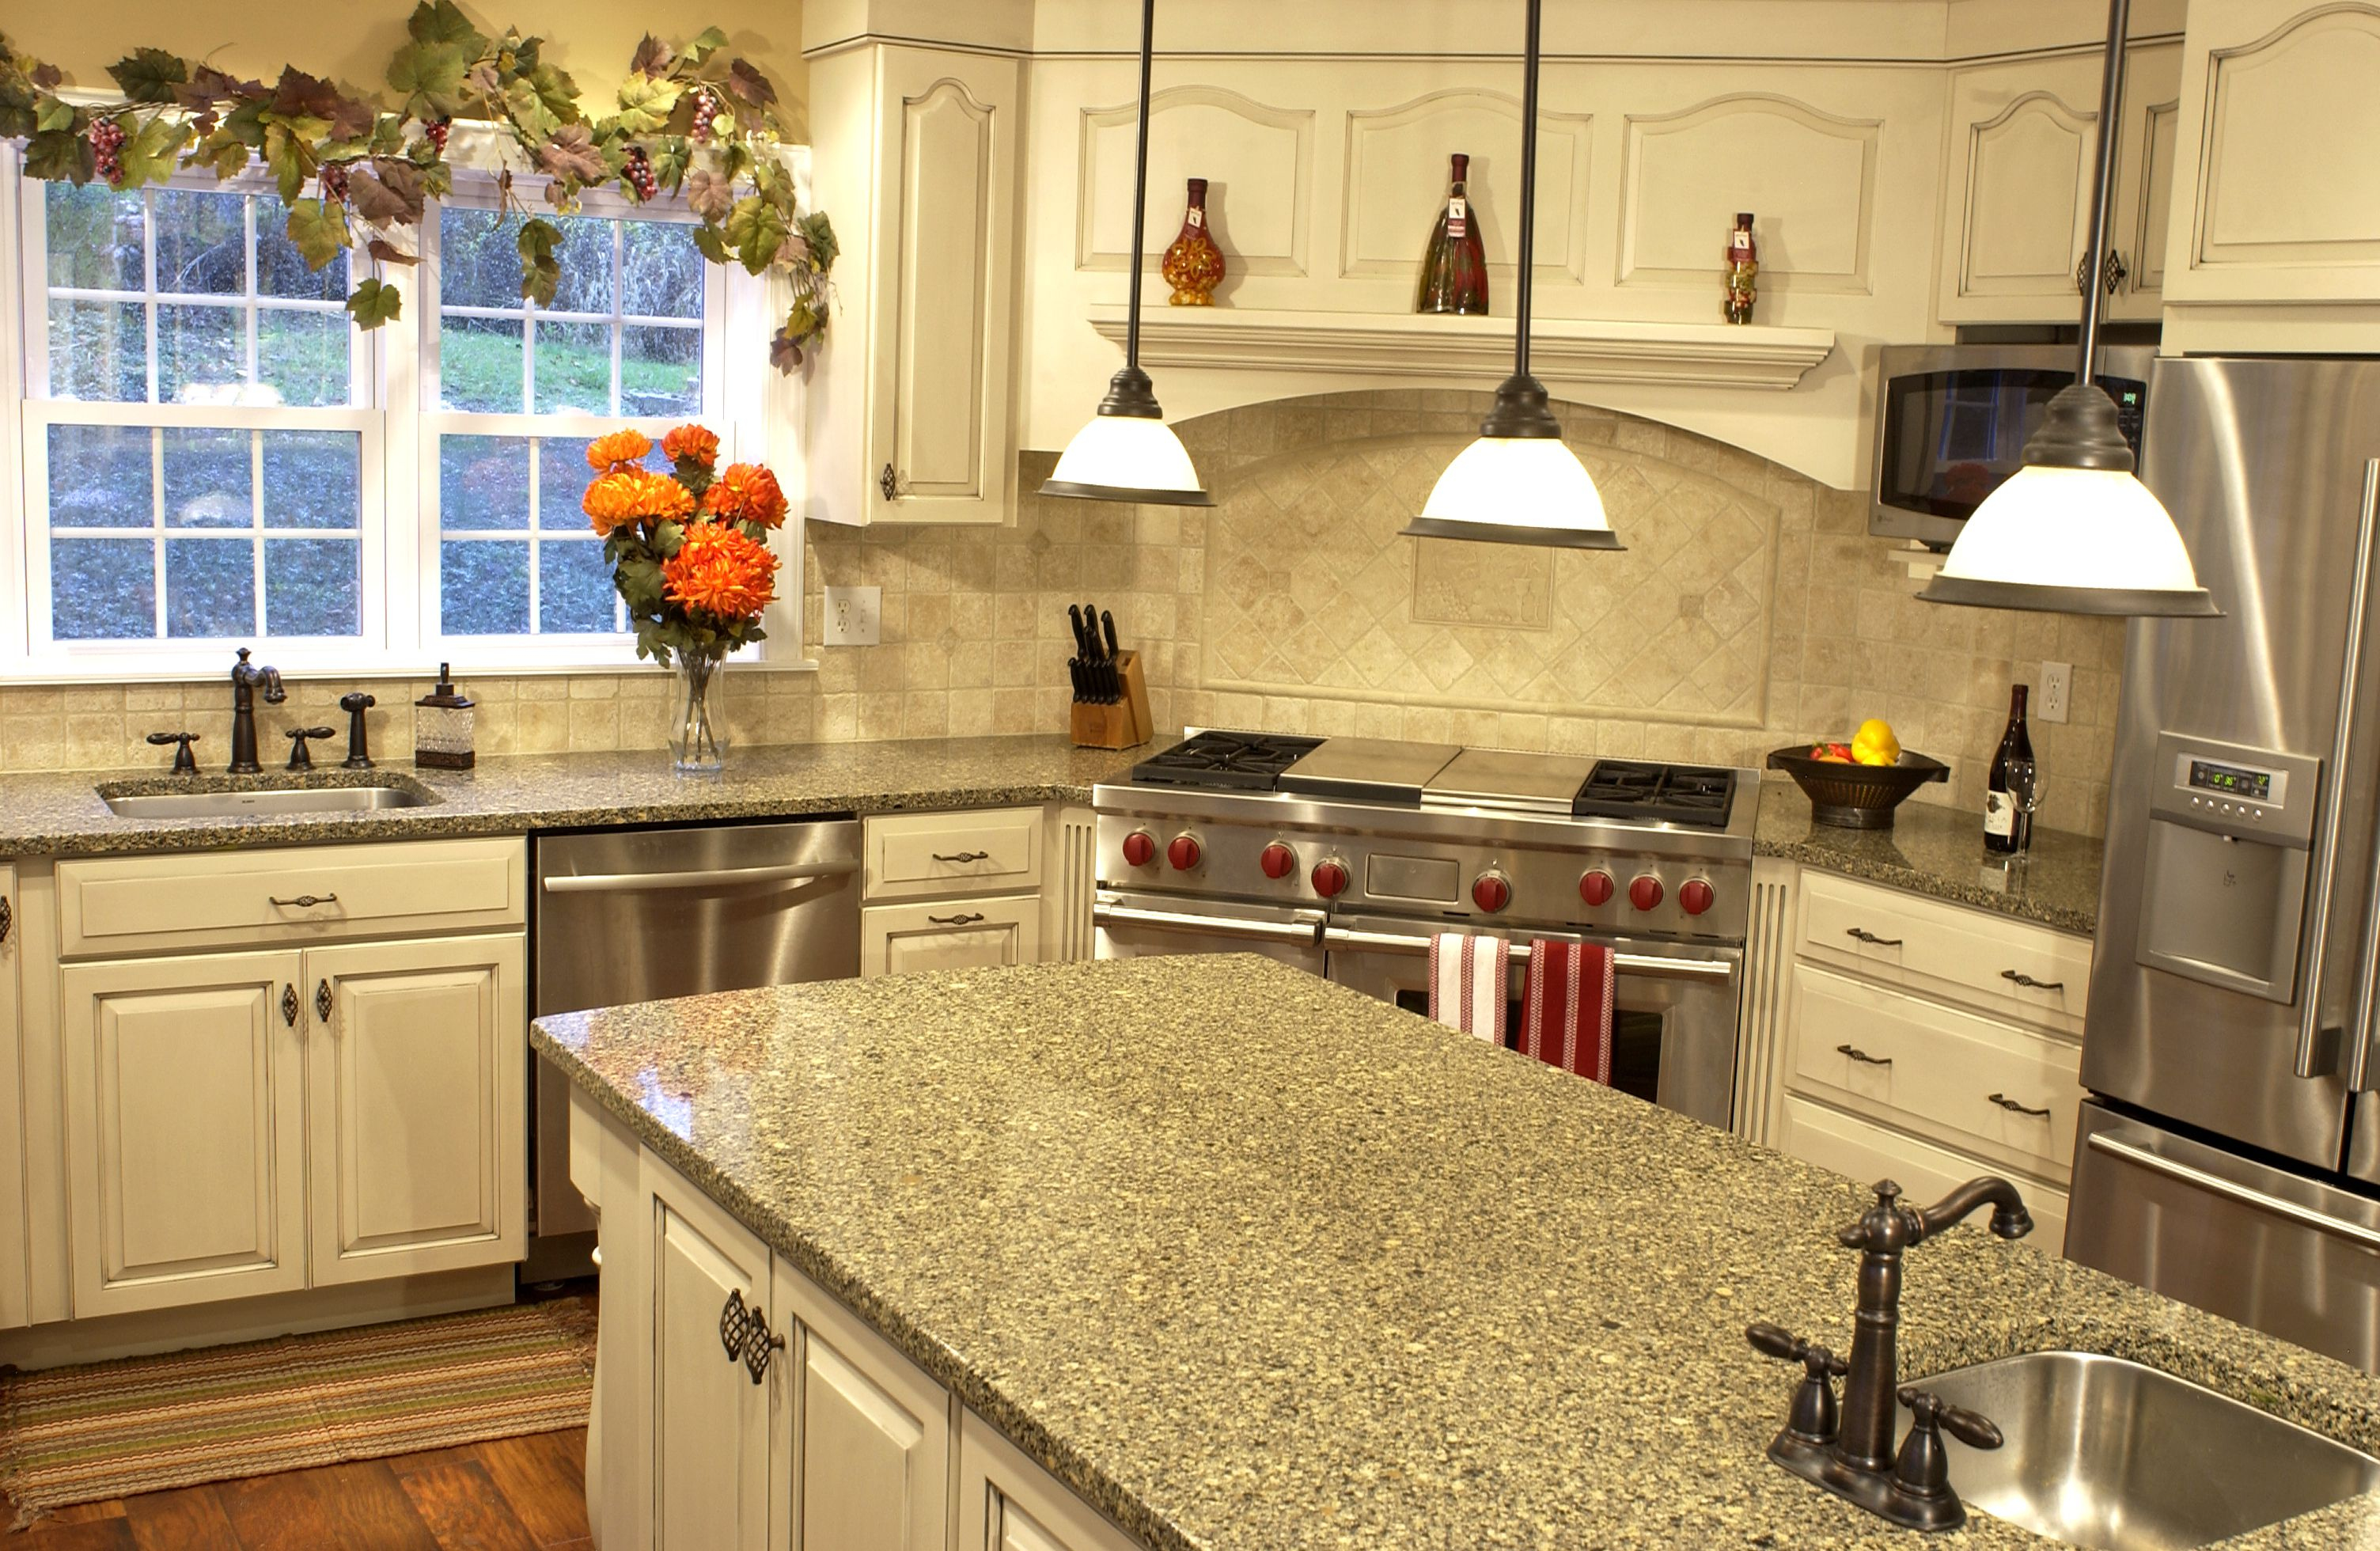 Classy Interior Kitchen Using White Cabinet also Marble Top Plus Pendant Lighting